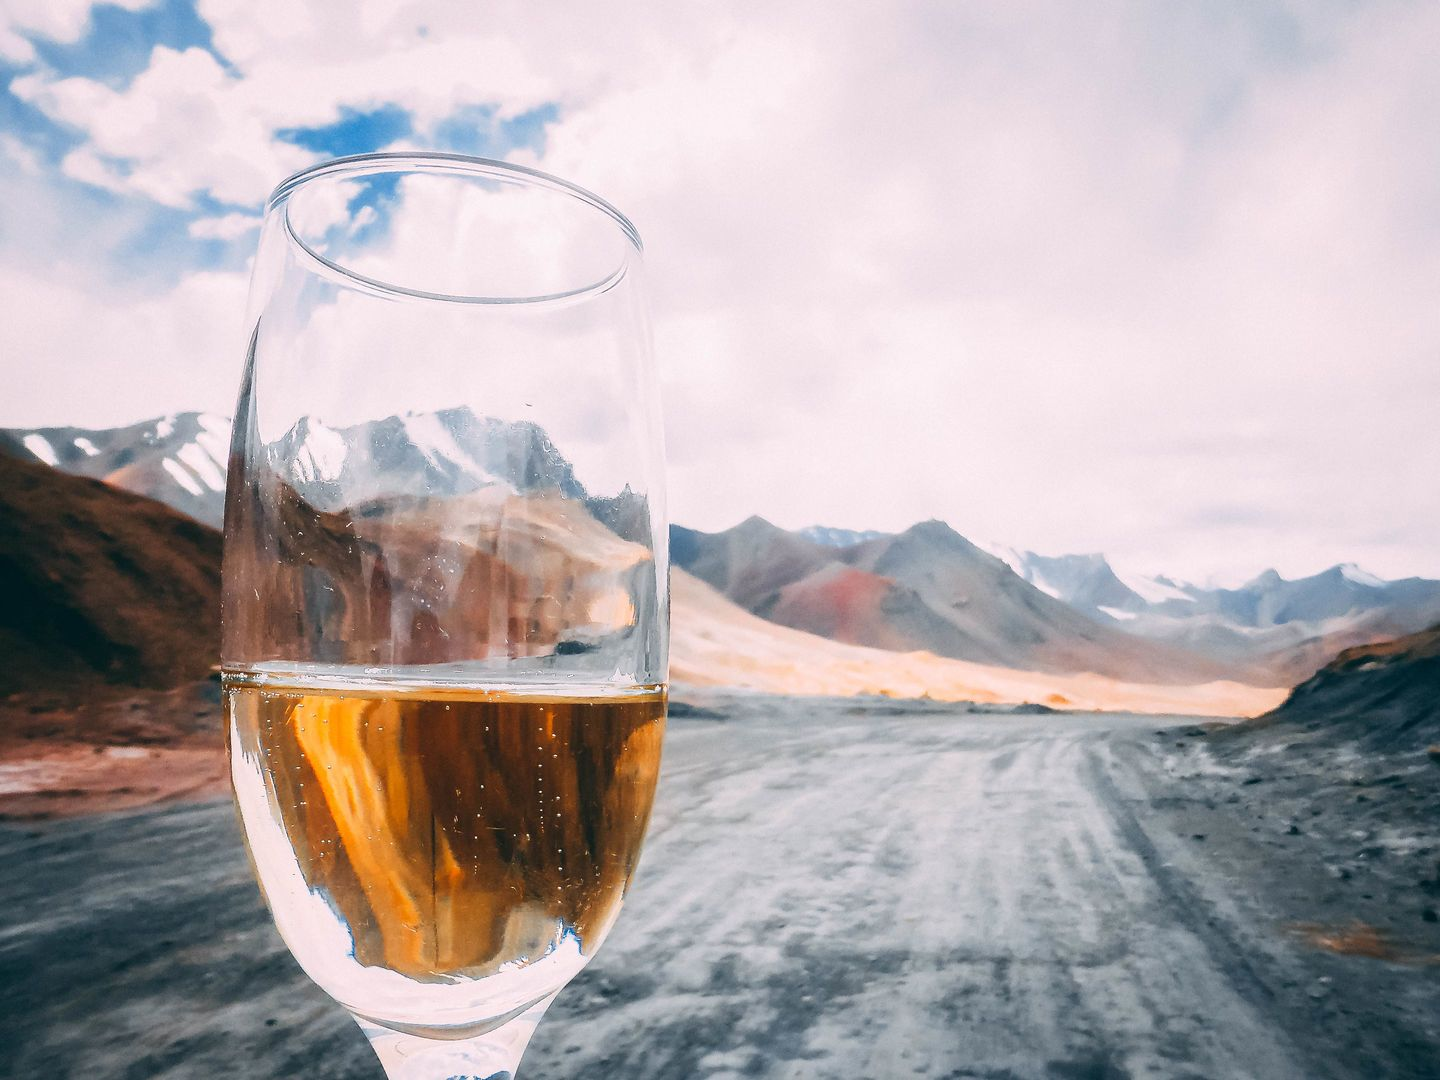 Central Asia landscape, glass of champagne